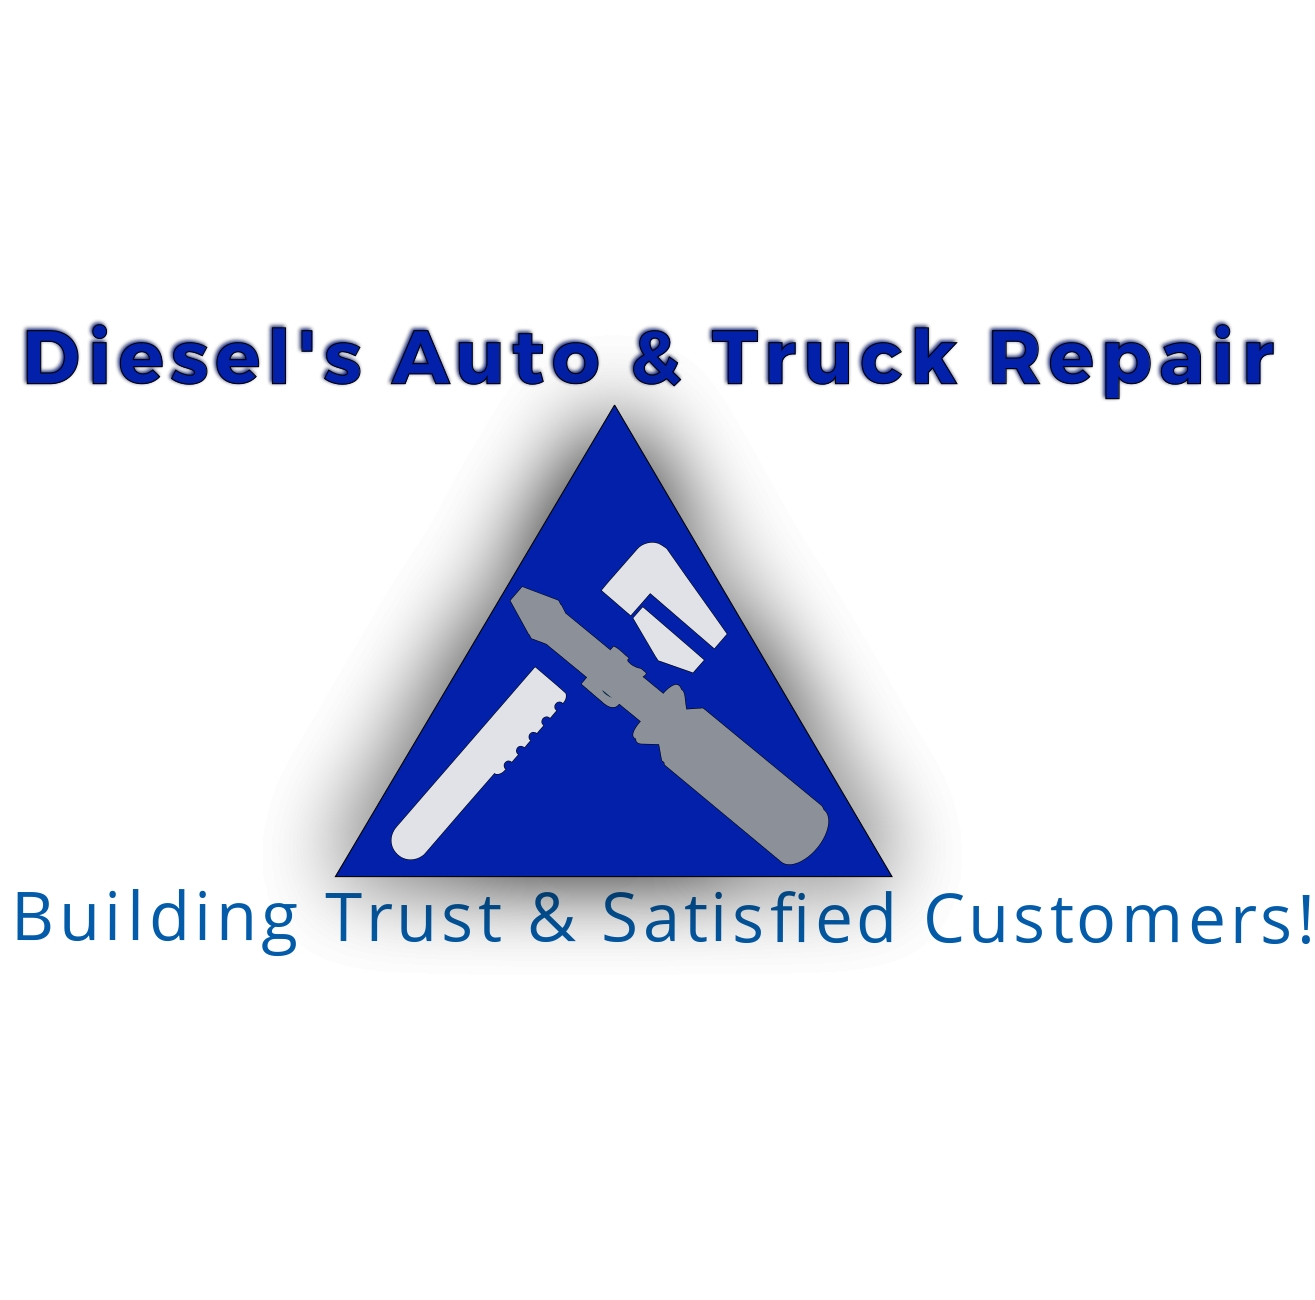 Diesels Auto and Truck Repair primary image